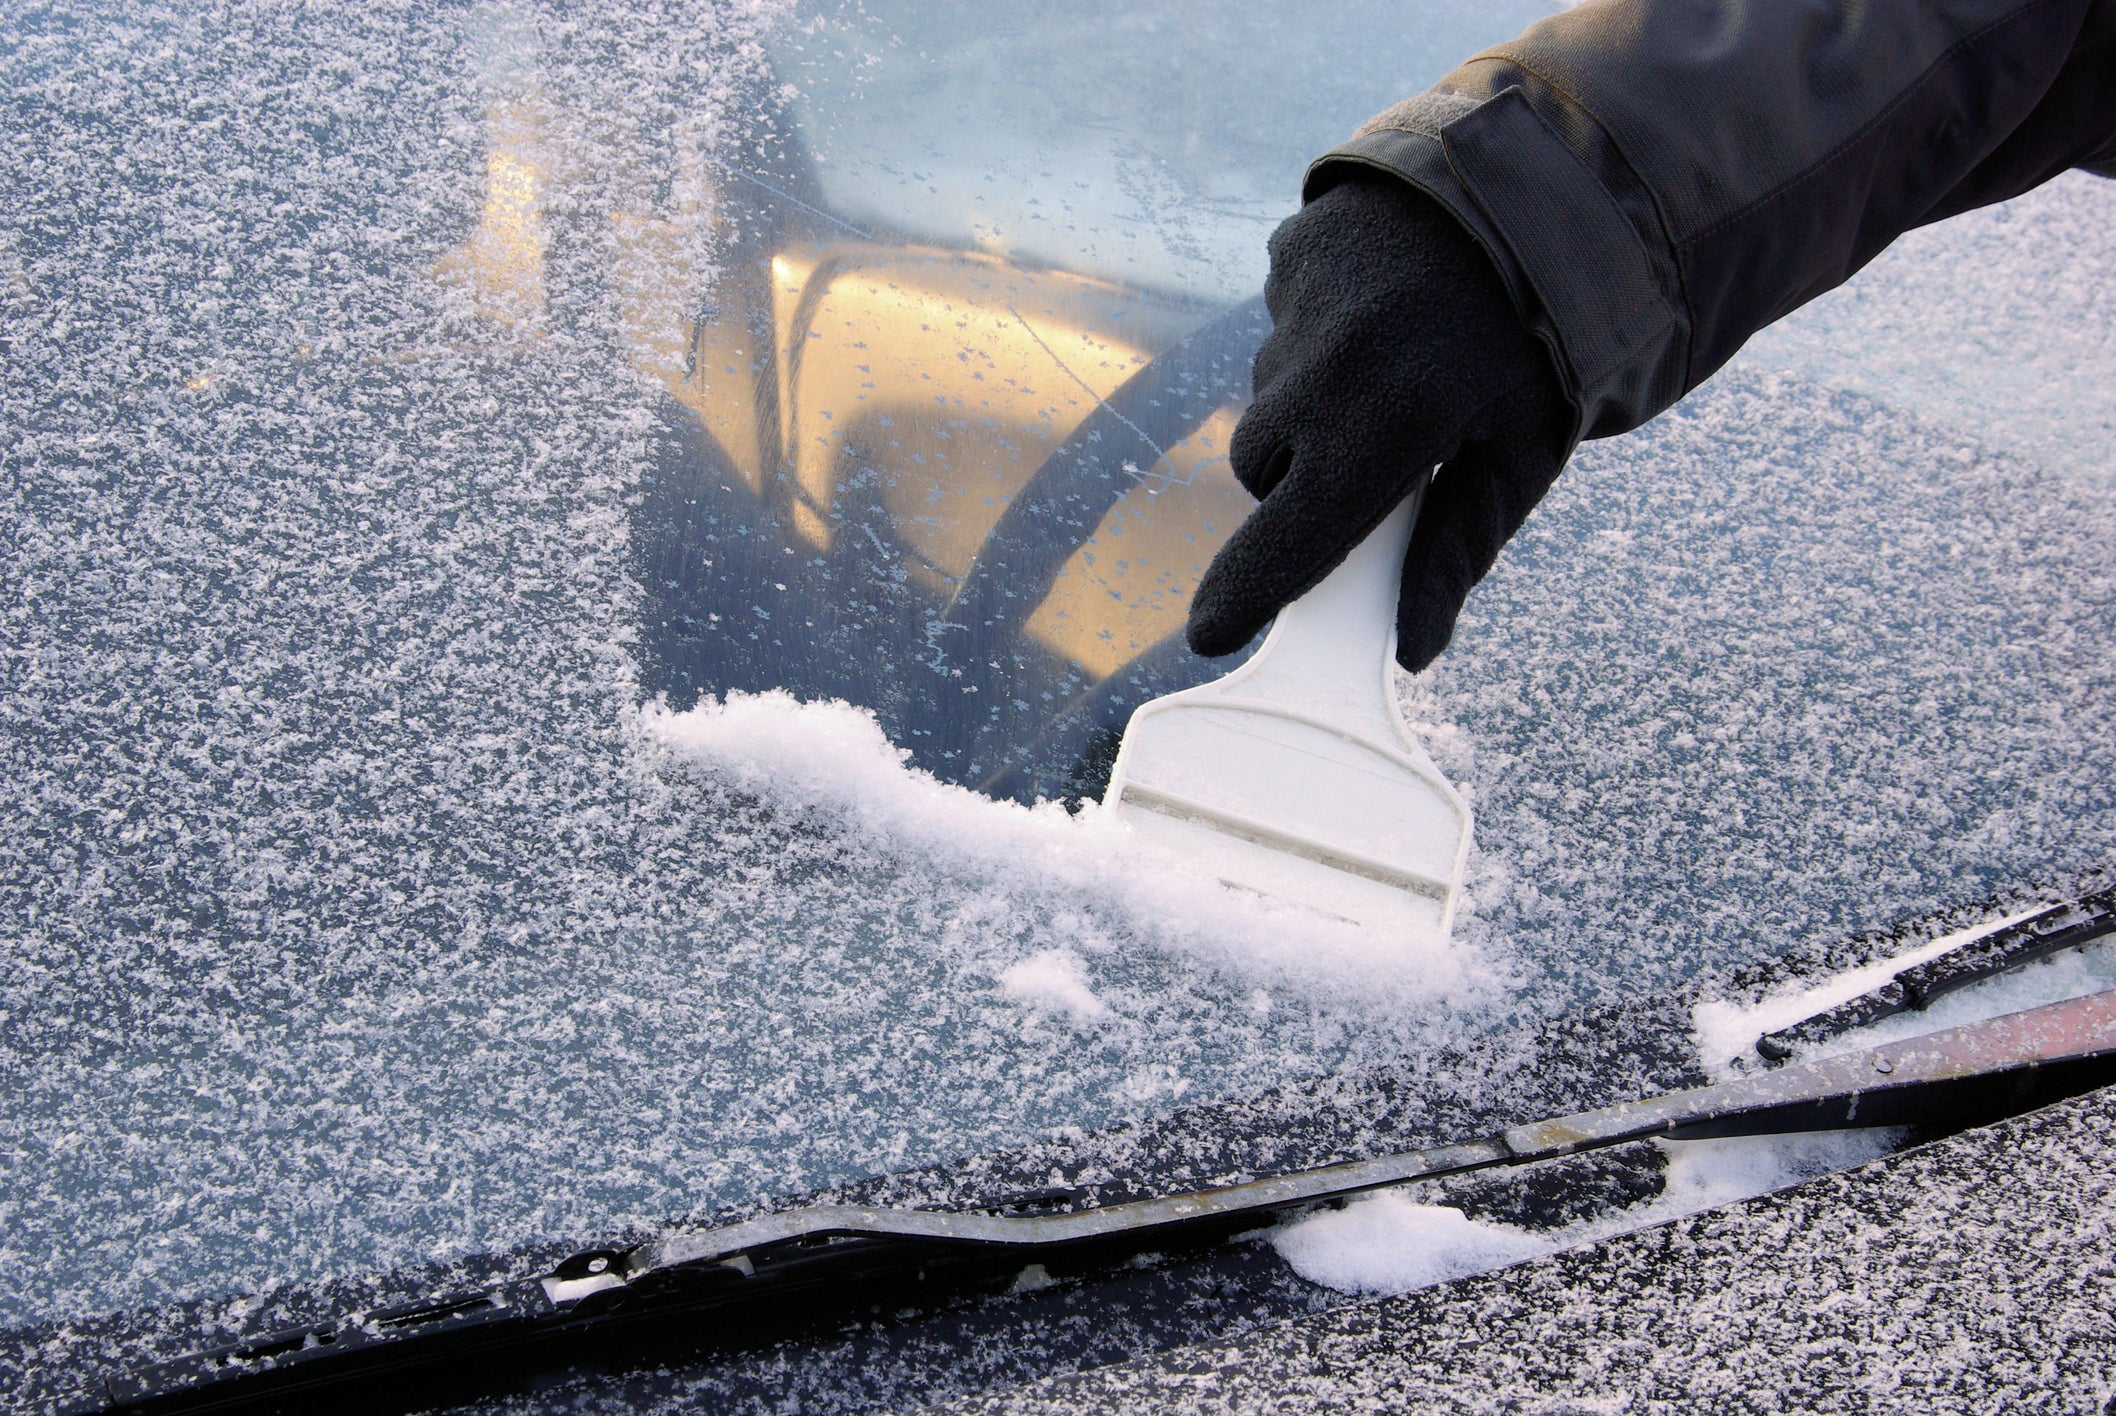 How to de-ice your car as quickly as possible